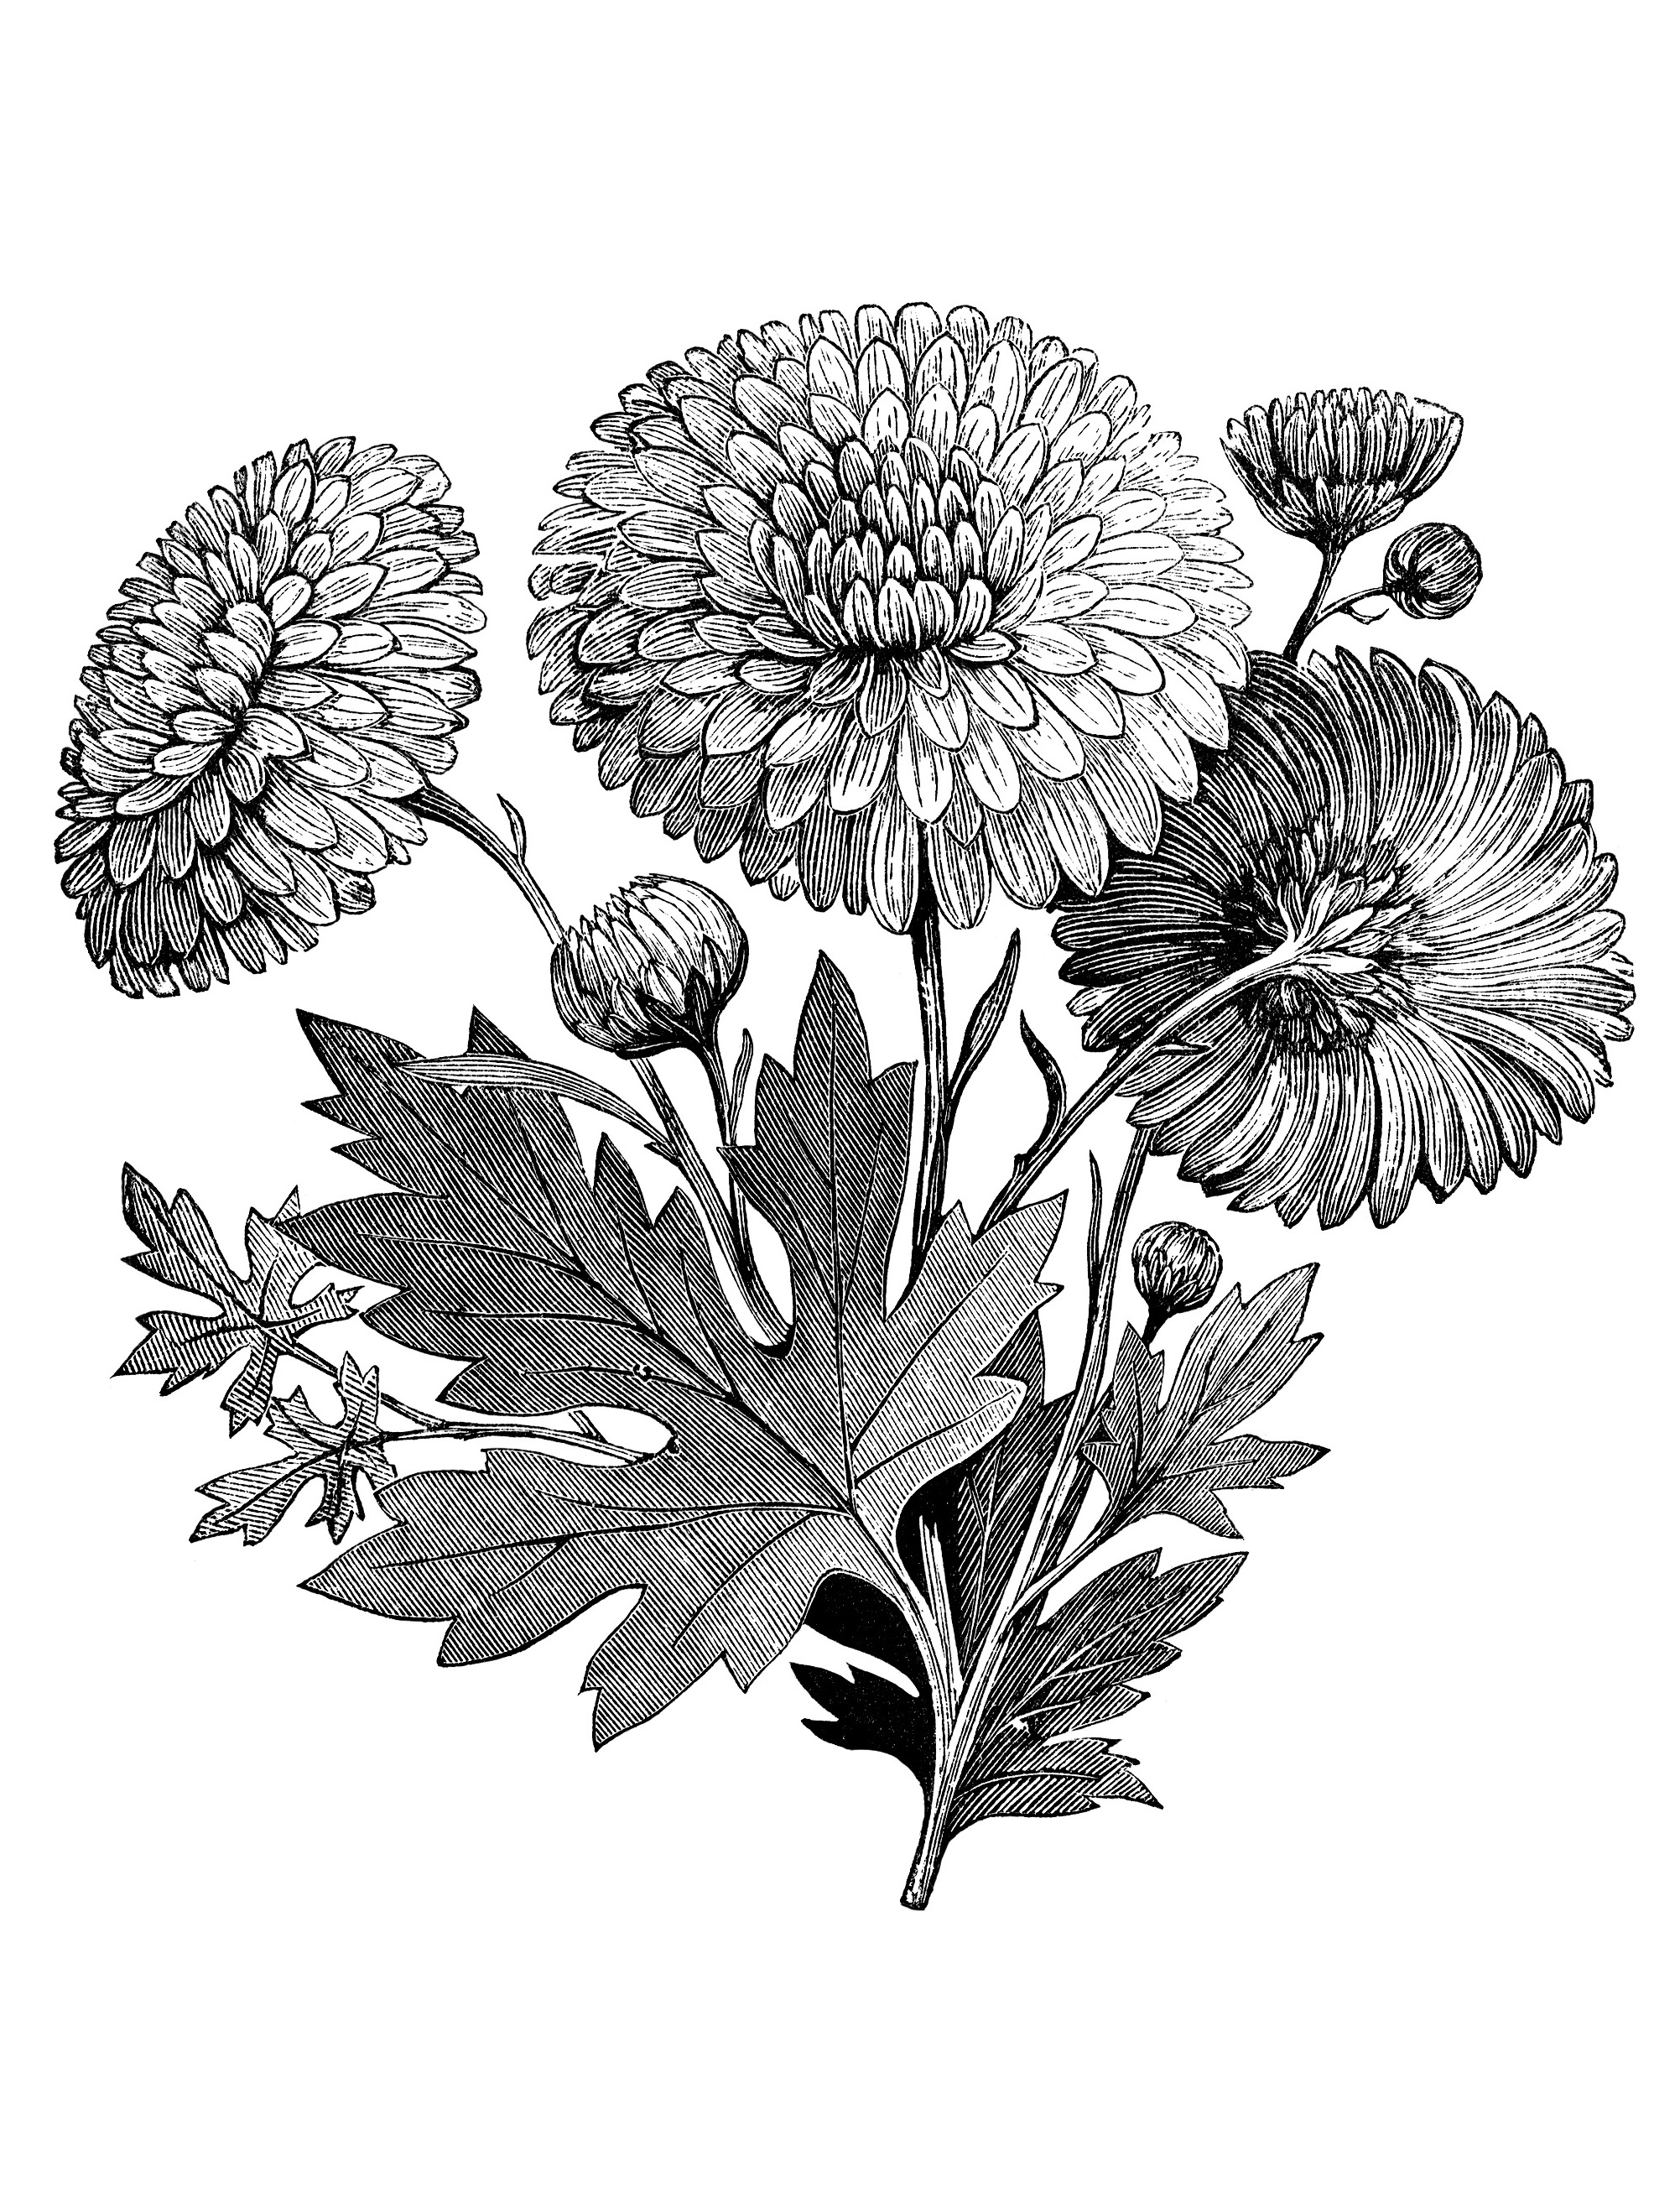 Vintage flower garden clip art black and white.